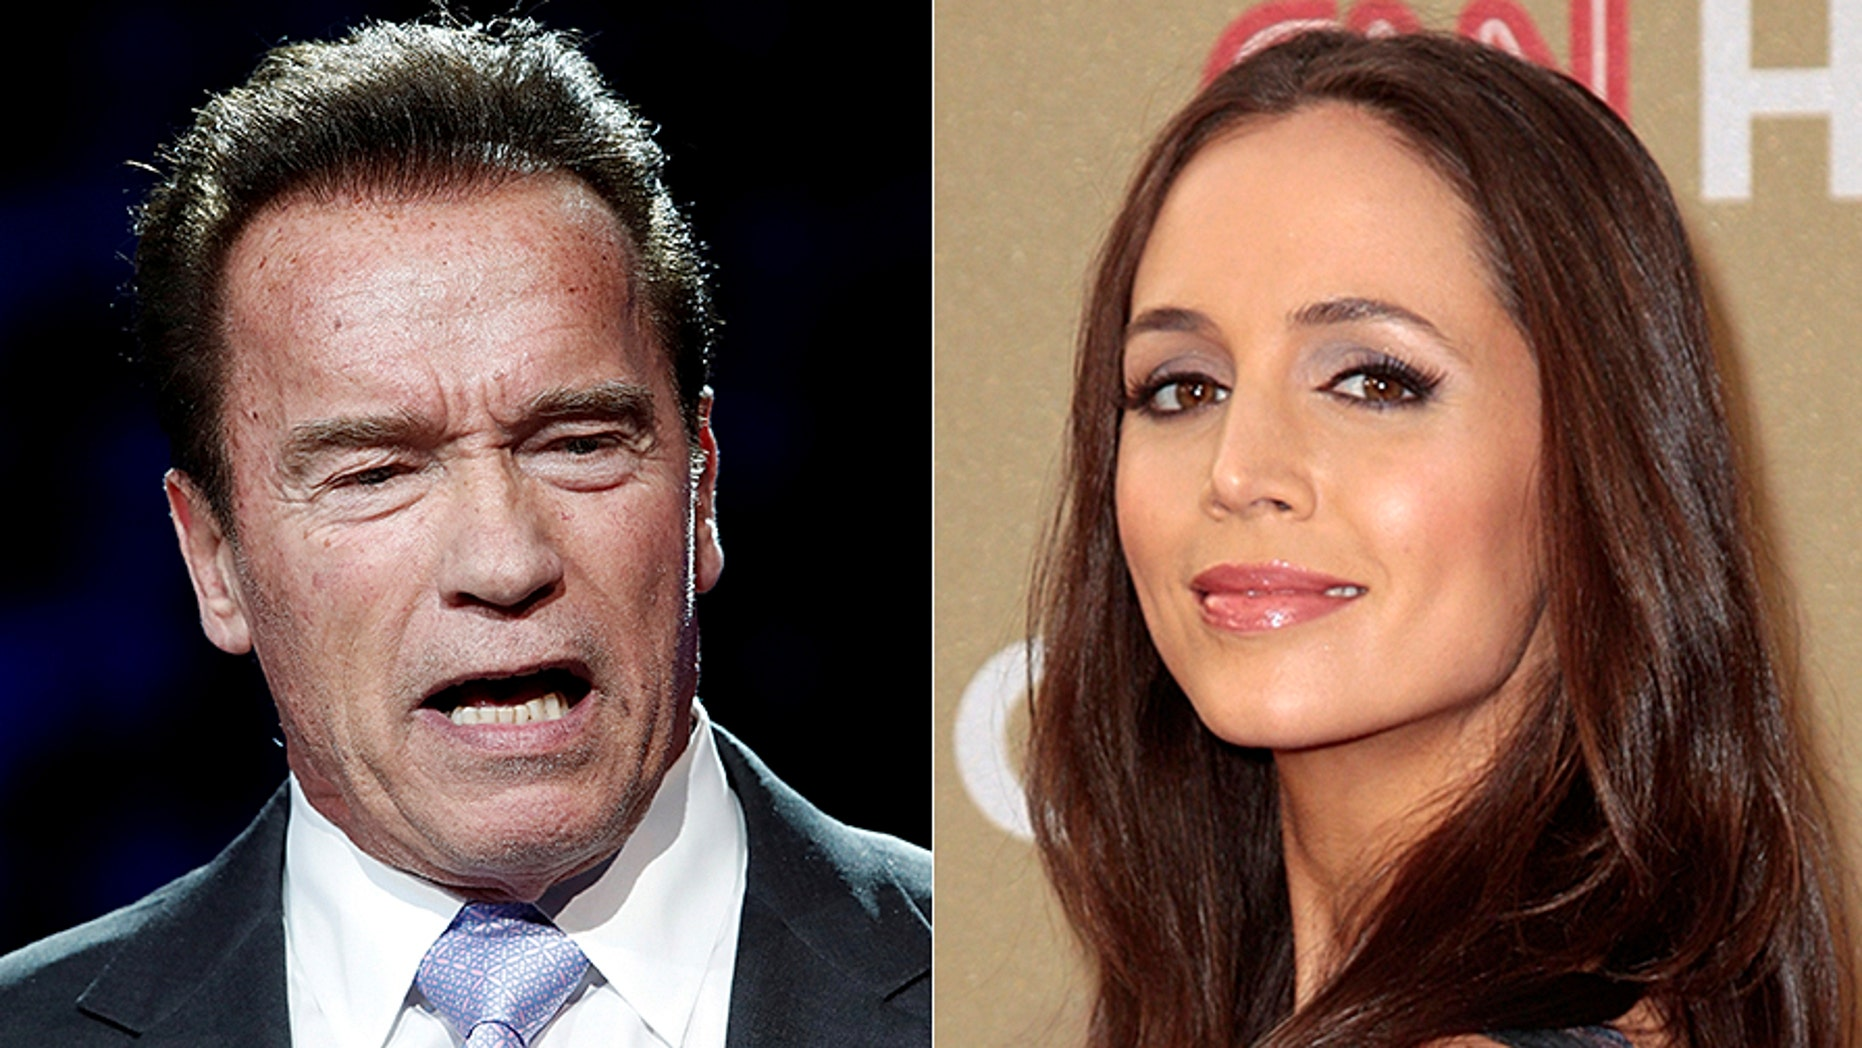 """Arnold Schwarzenegger said he was """"shocked and saddened for Eliza (Dushku)"""" but proud of her for coming forward with her molestation allegations."""